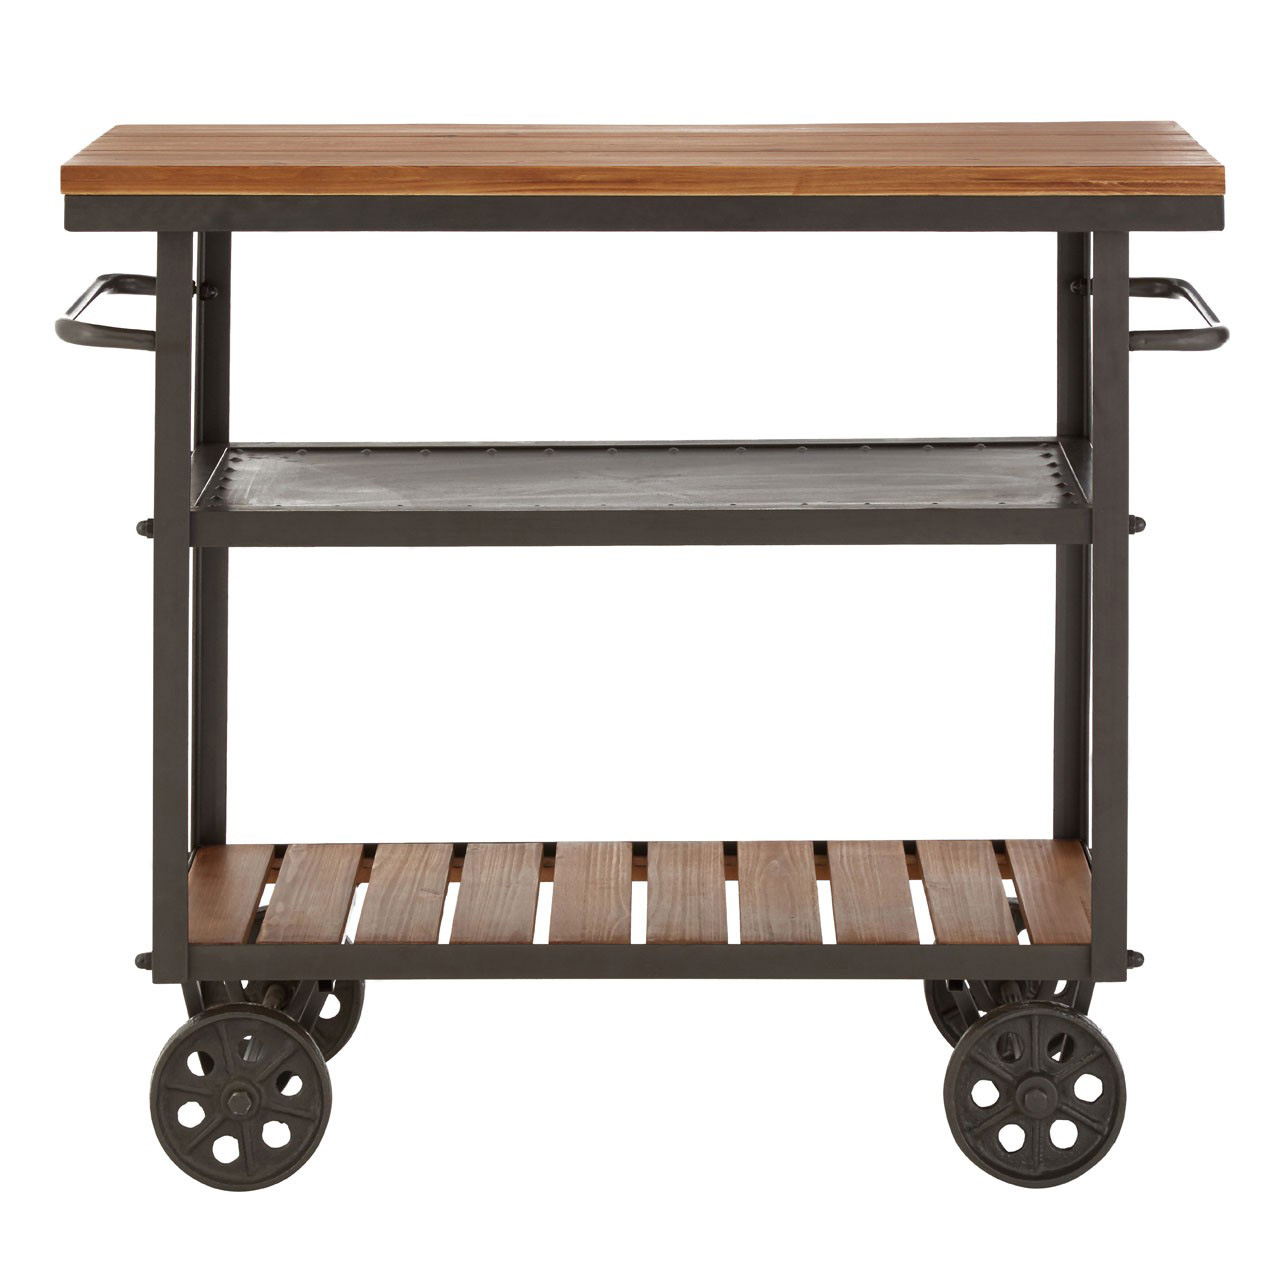 Foundry Table Cart